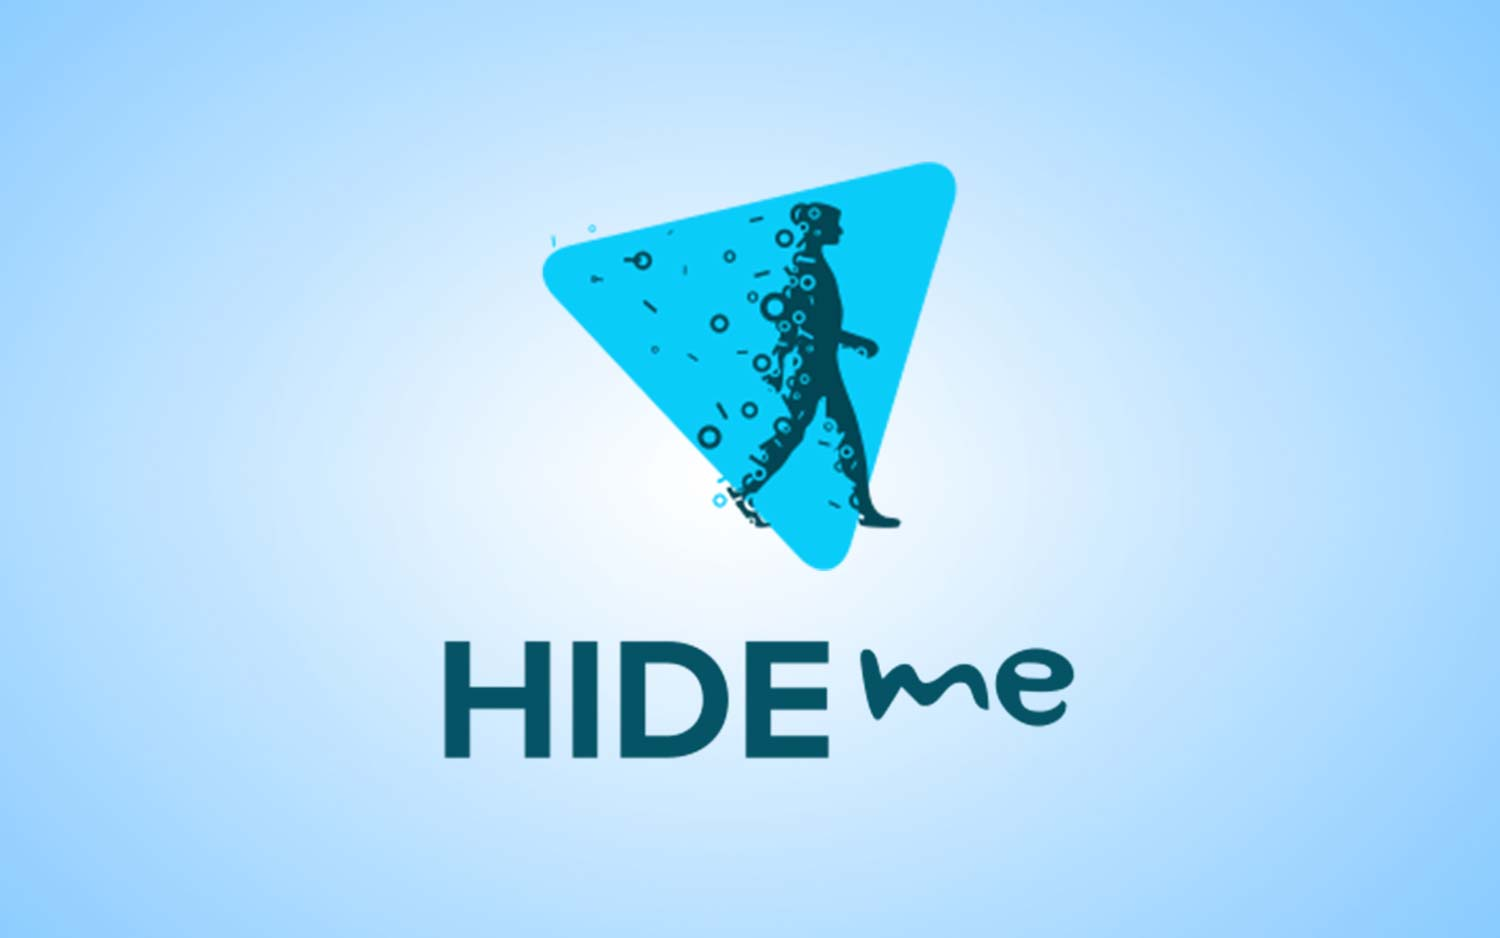 Hide.me Free VPN - Full Review and Benchmarks | Tom's Guide